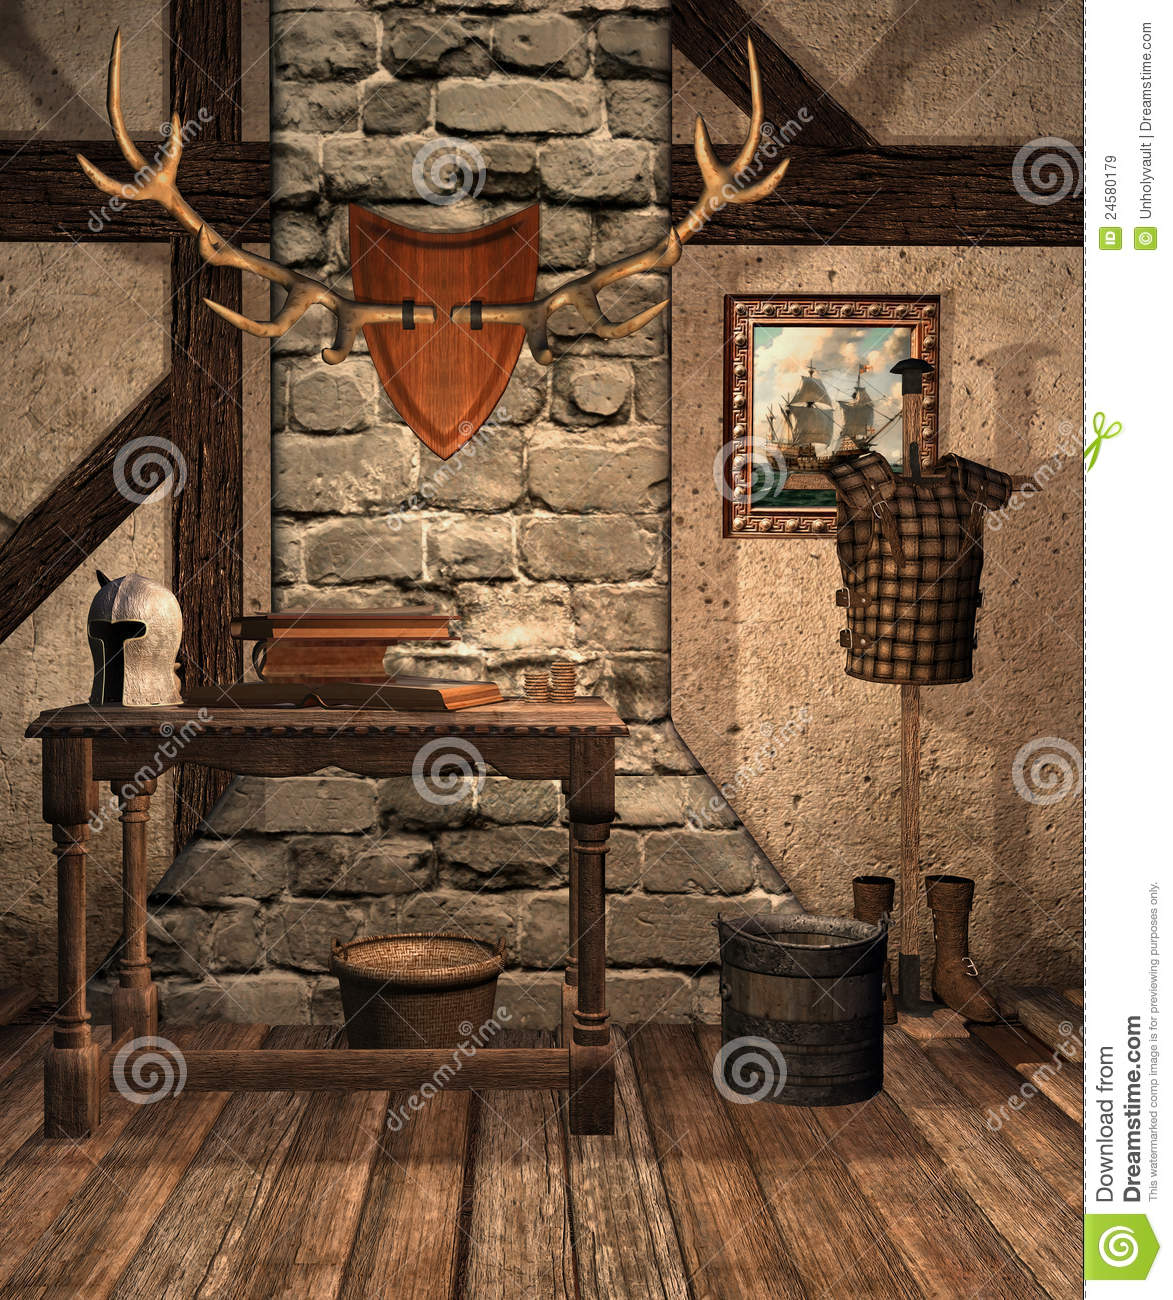 Medieval room with old objects stock illustration for Old objects